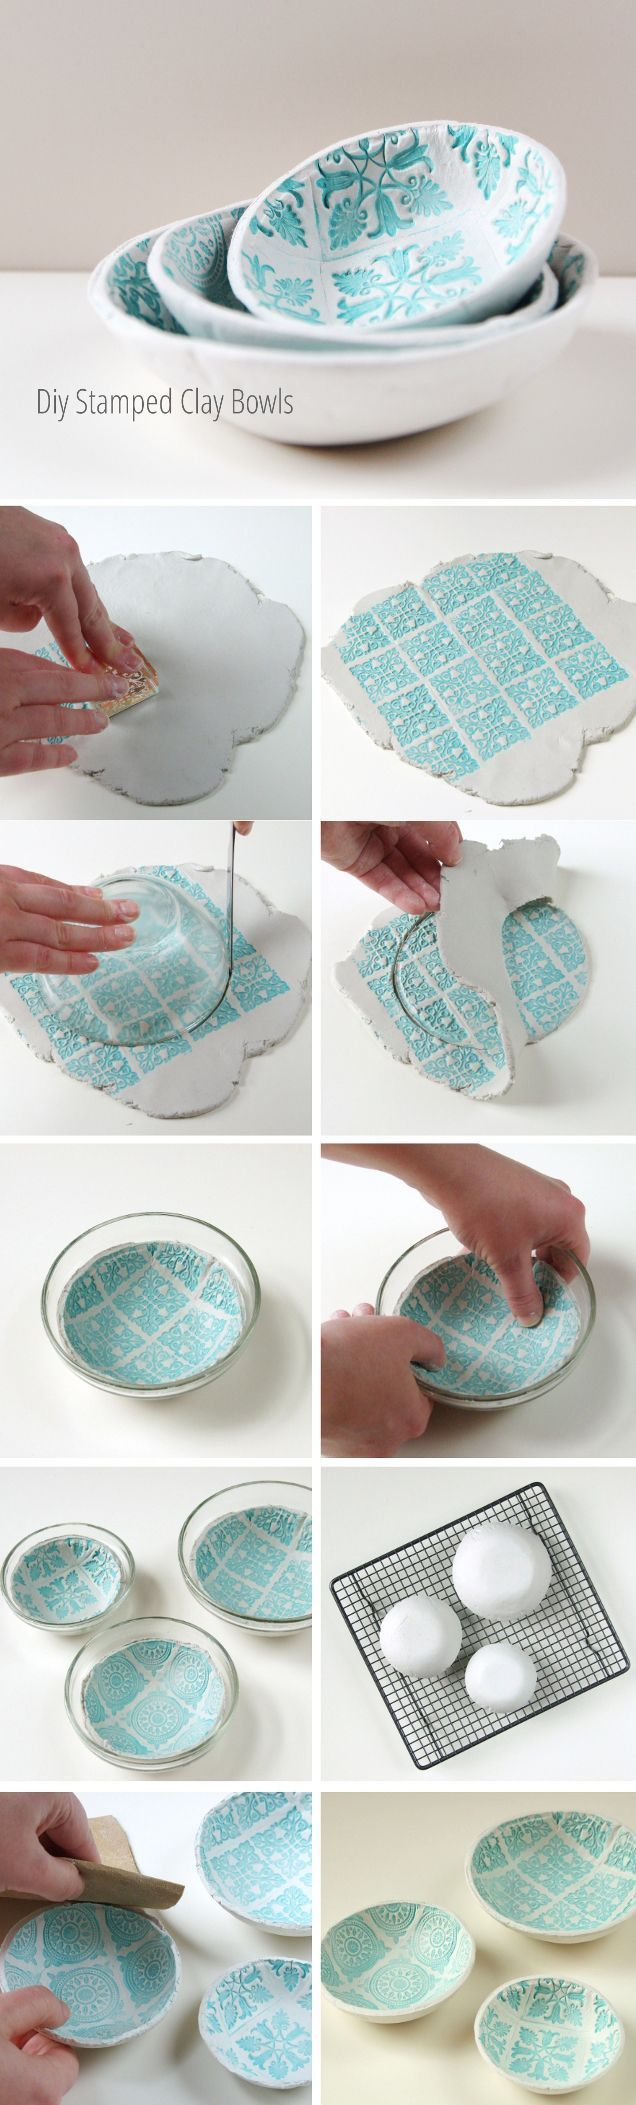 Diy Stamped Clay Bowls. This is how I could make my own personalised crockery sets!